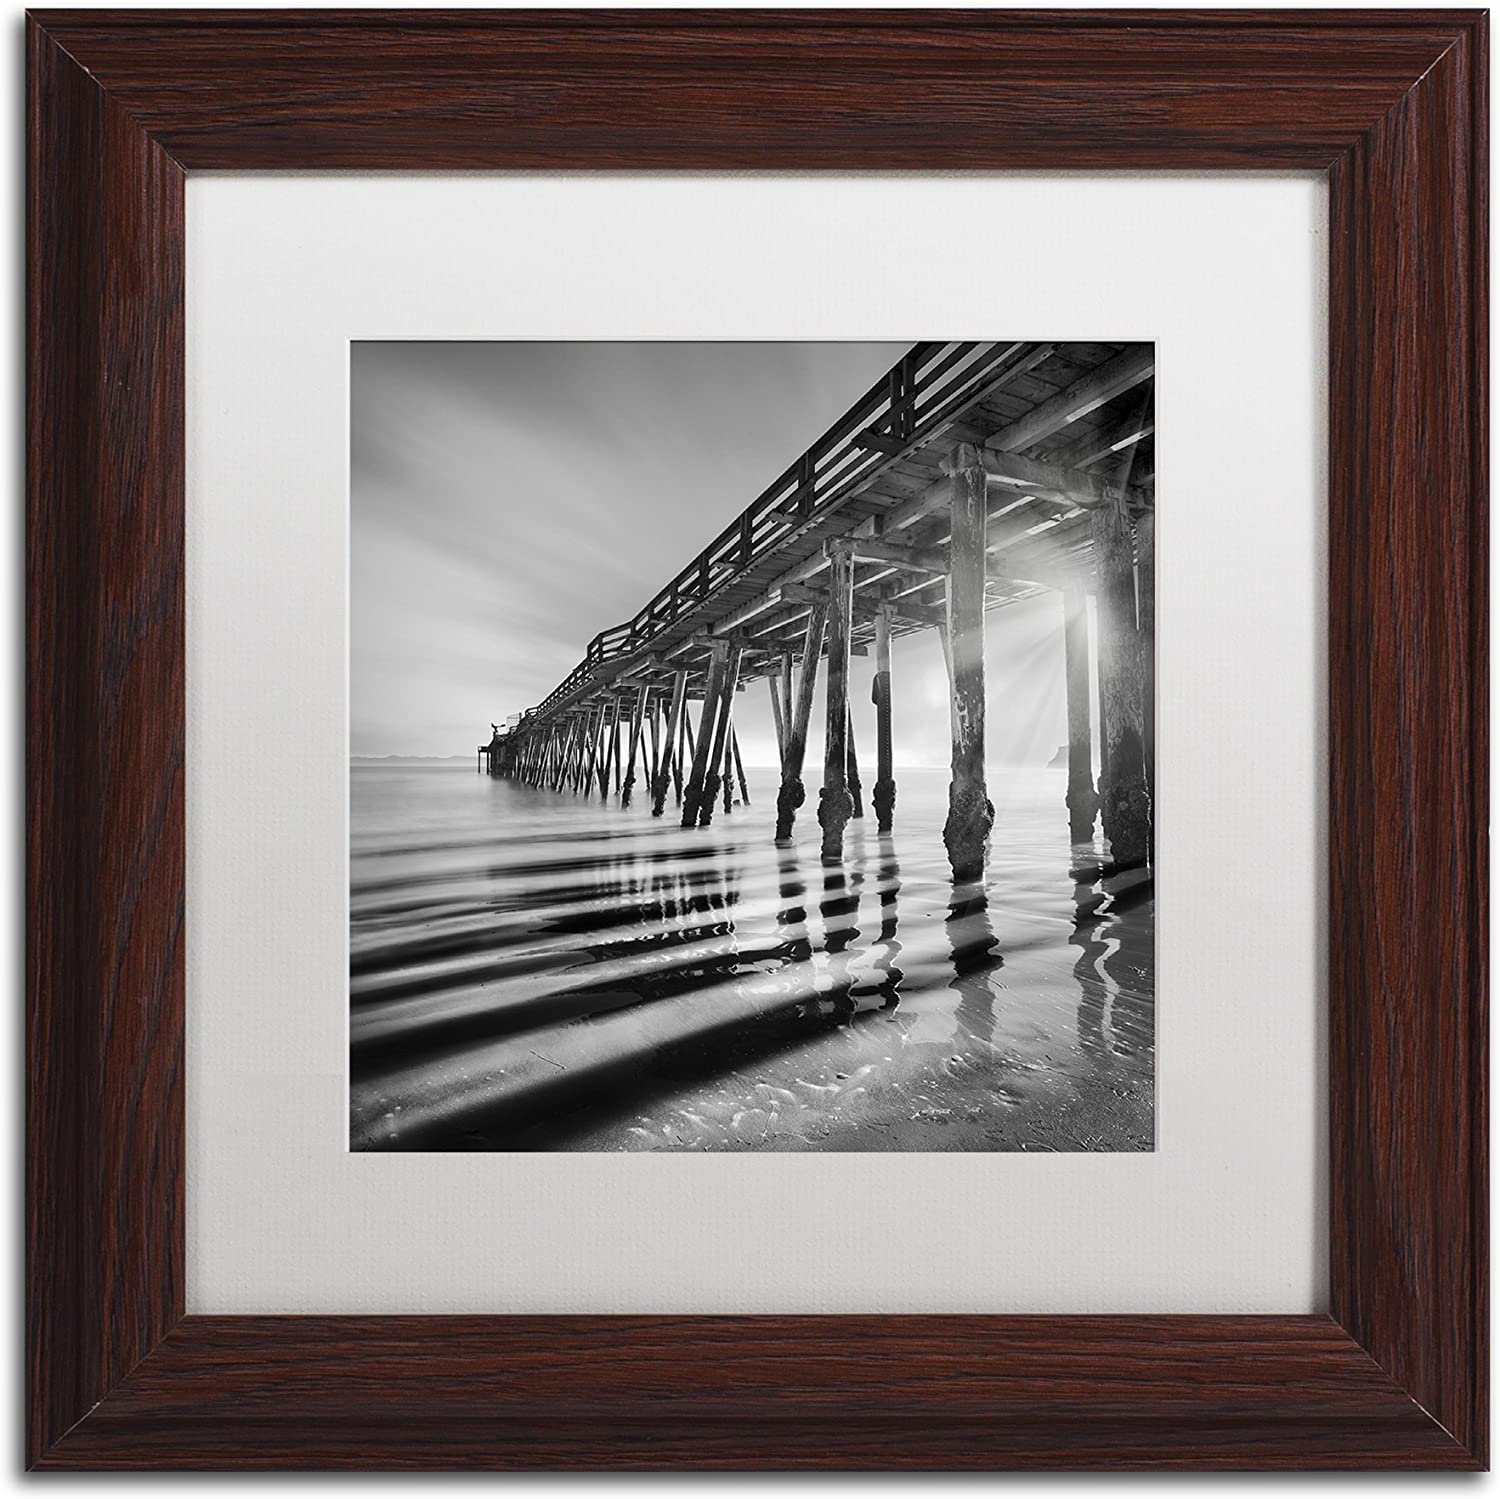 Trademark Fine Art Pier and Shadows by Moises Levy in White Matte and Wood Framed Artwork, 11 by 11Inch